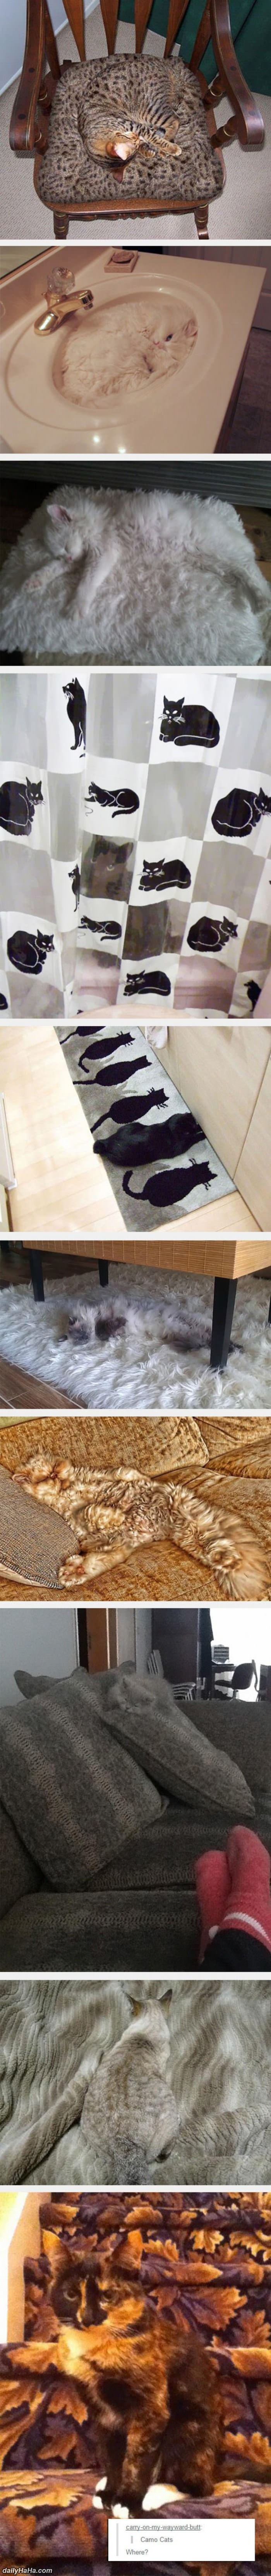 camo cats funny picture